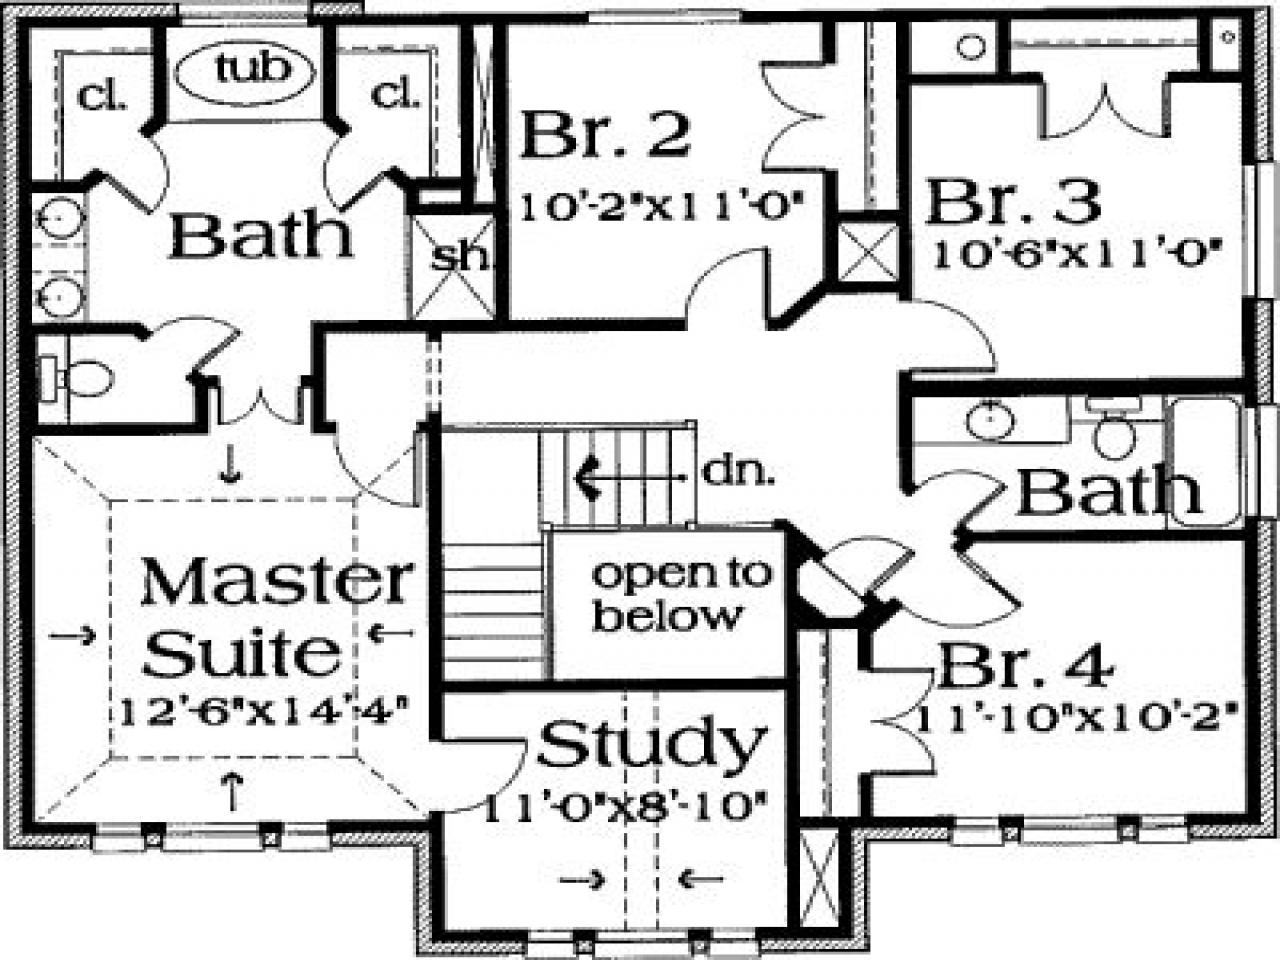 40-Foot Pool 40 Foot Wide House Plans, house plans 40 feet